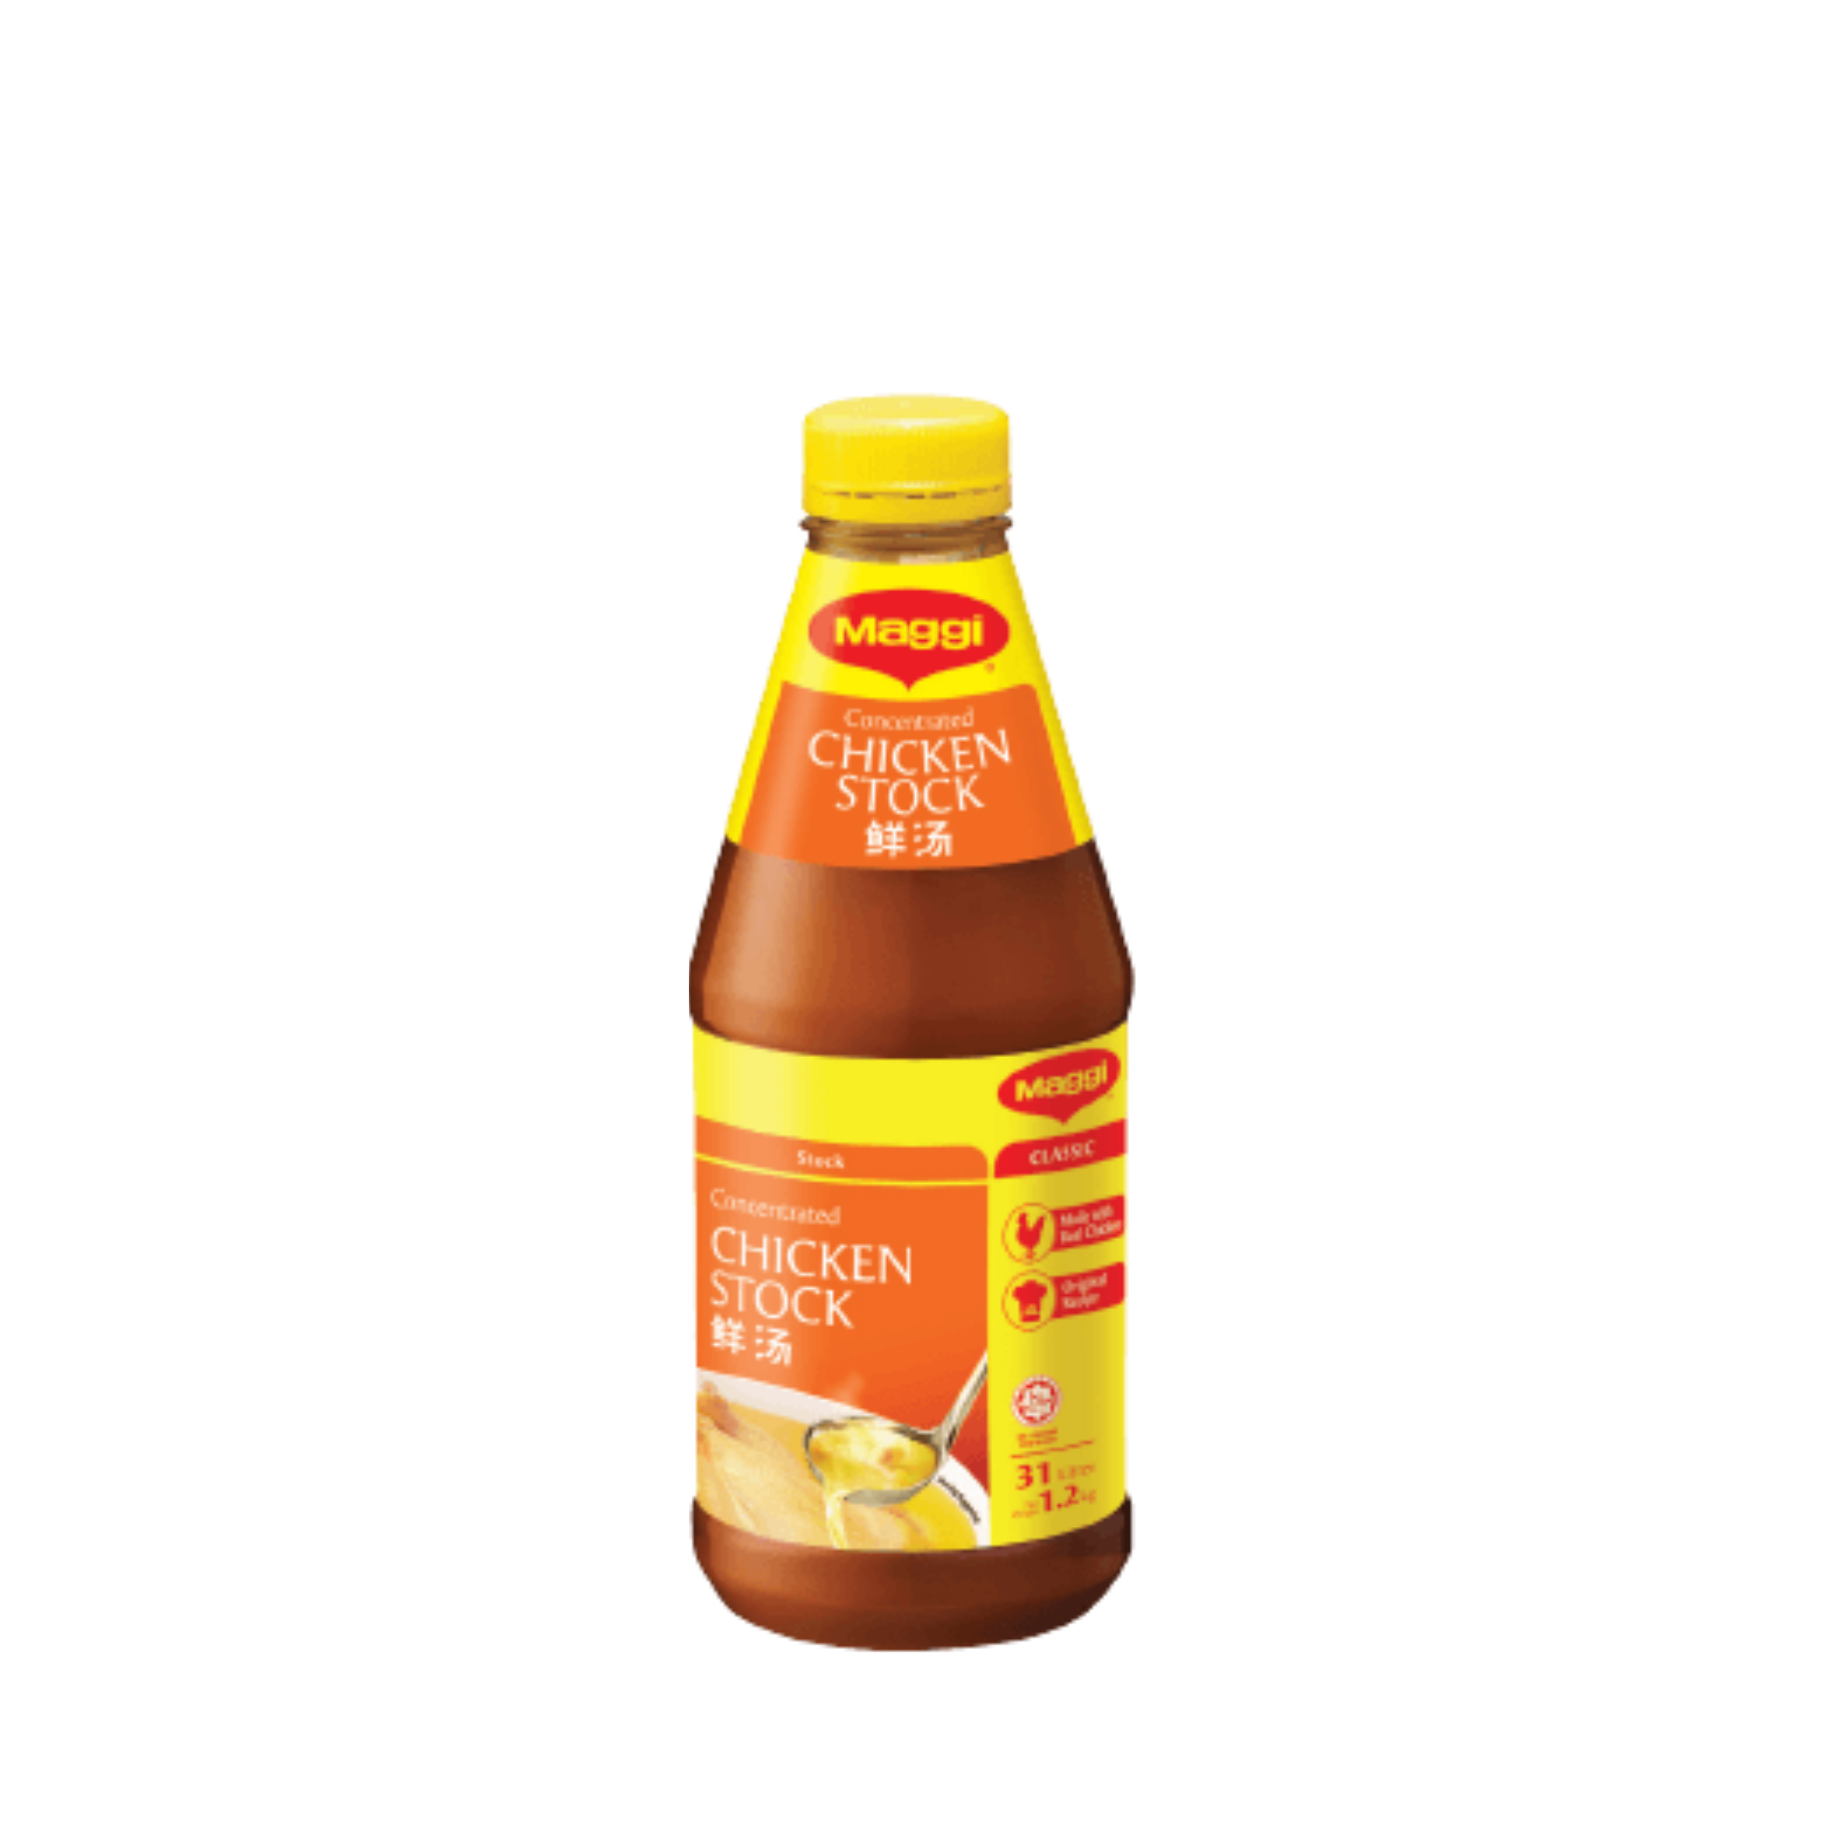 maggi concentrated stock.png